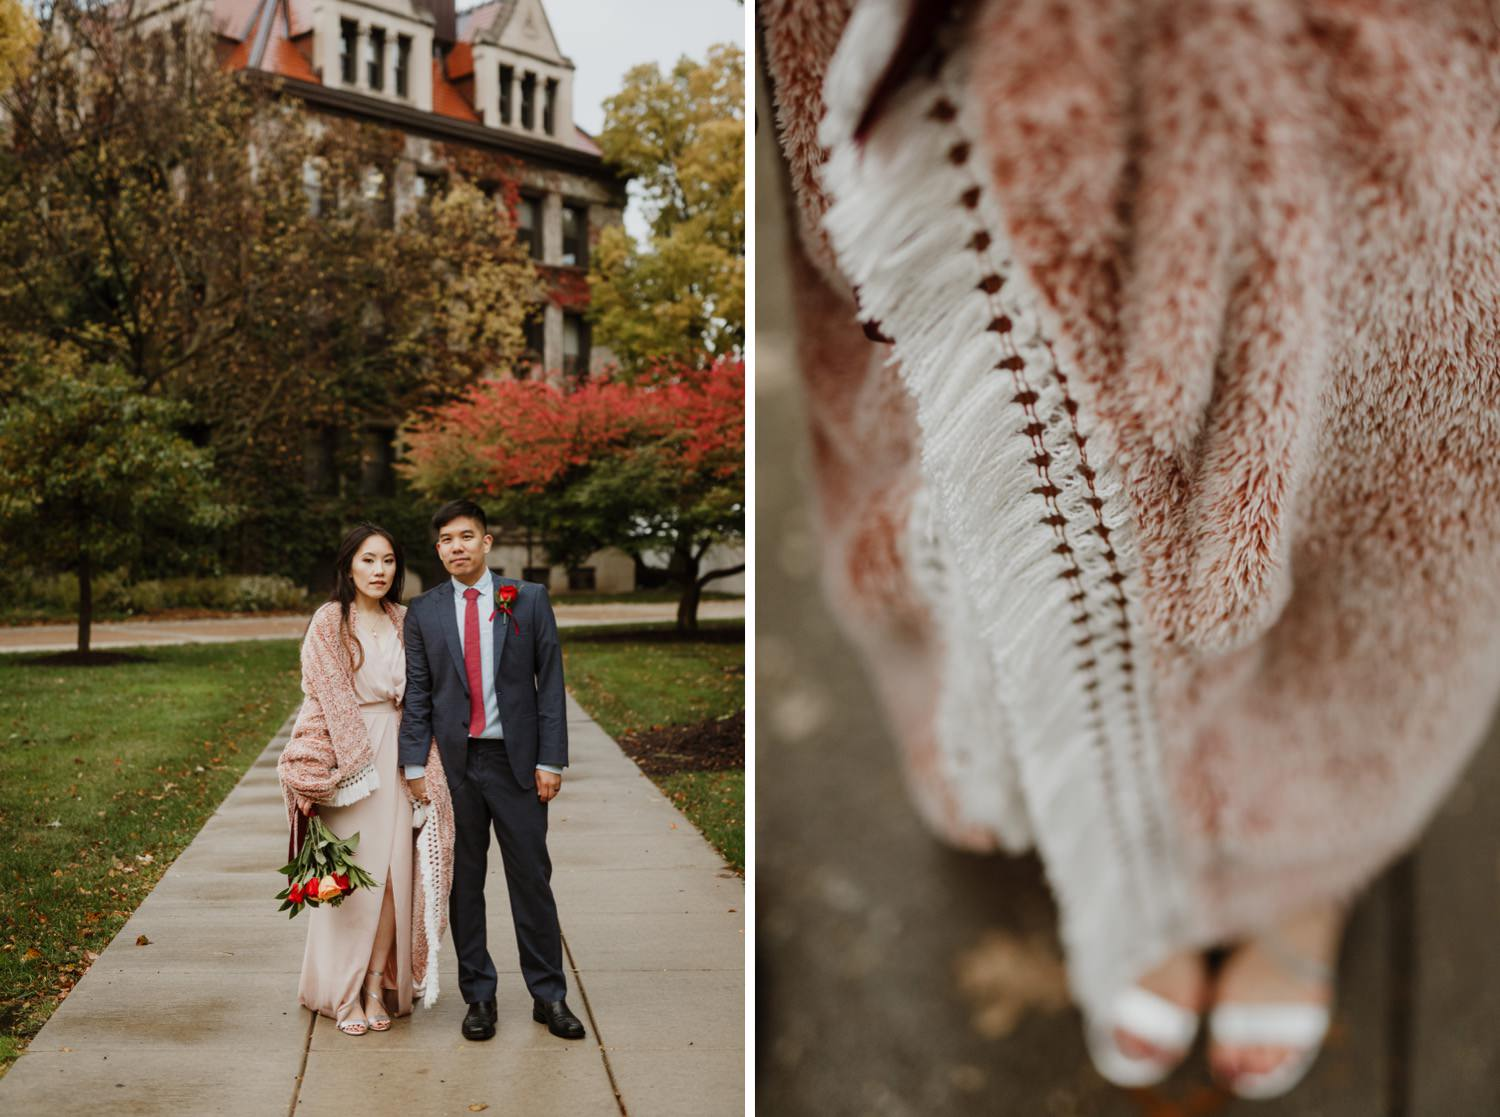 portrait of the bride and groom at University of Chicago after the wedding